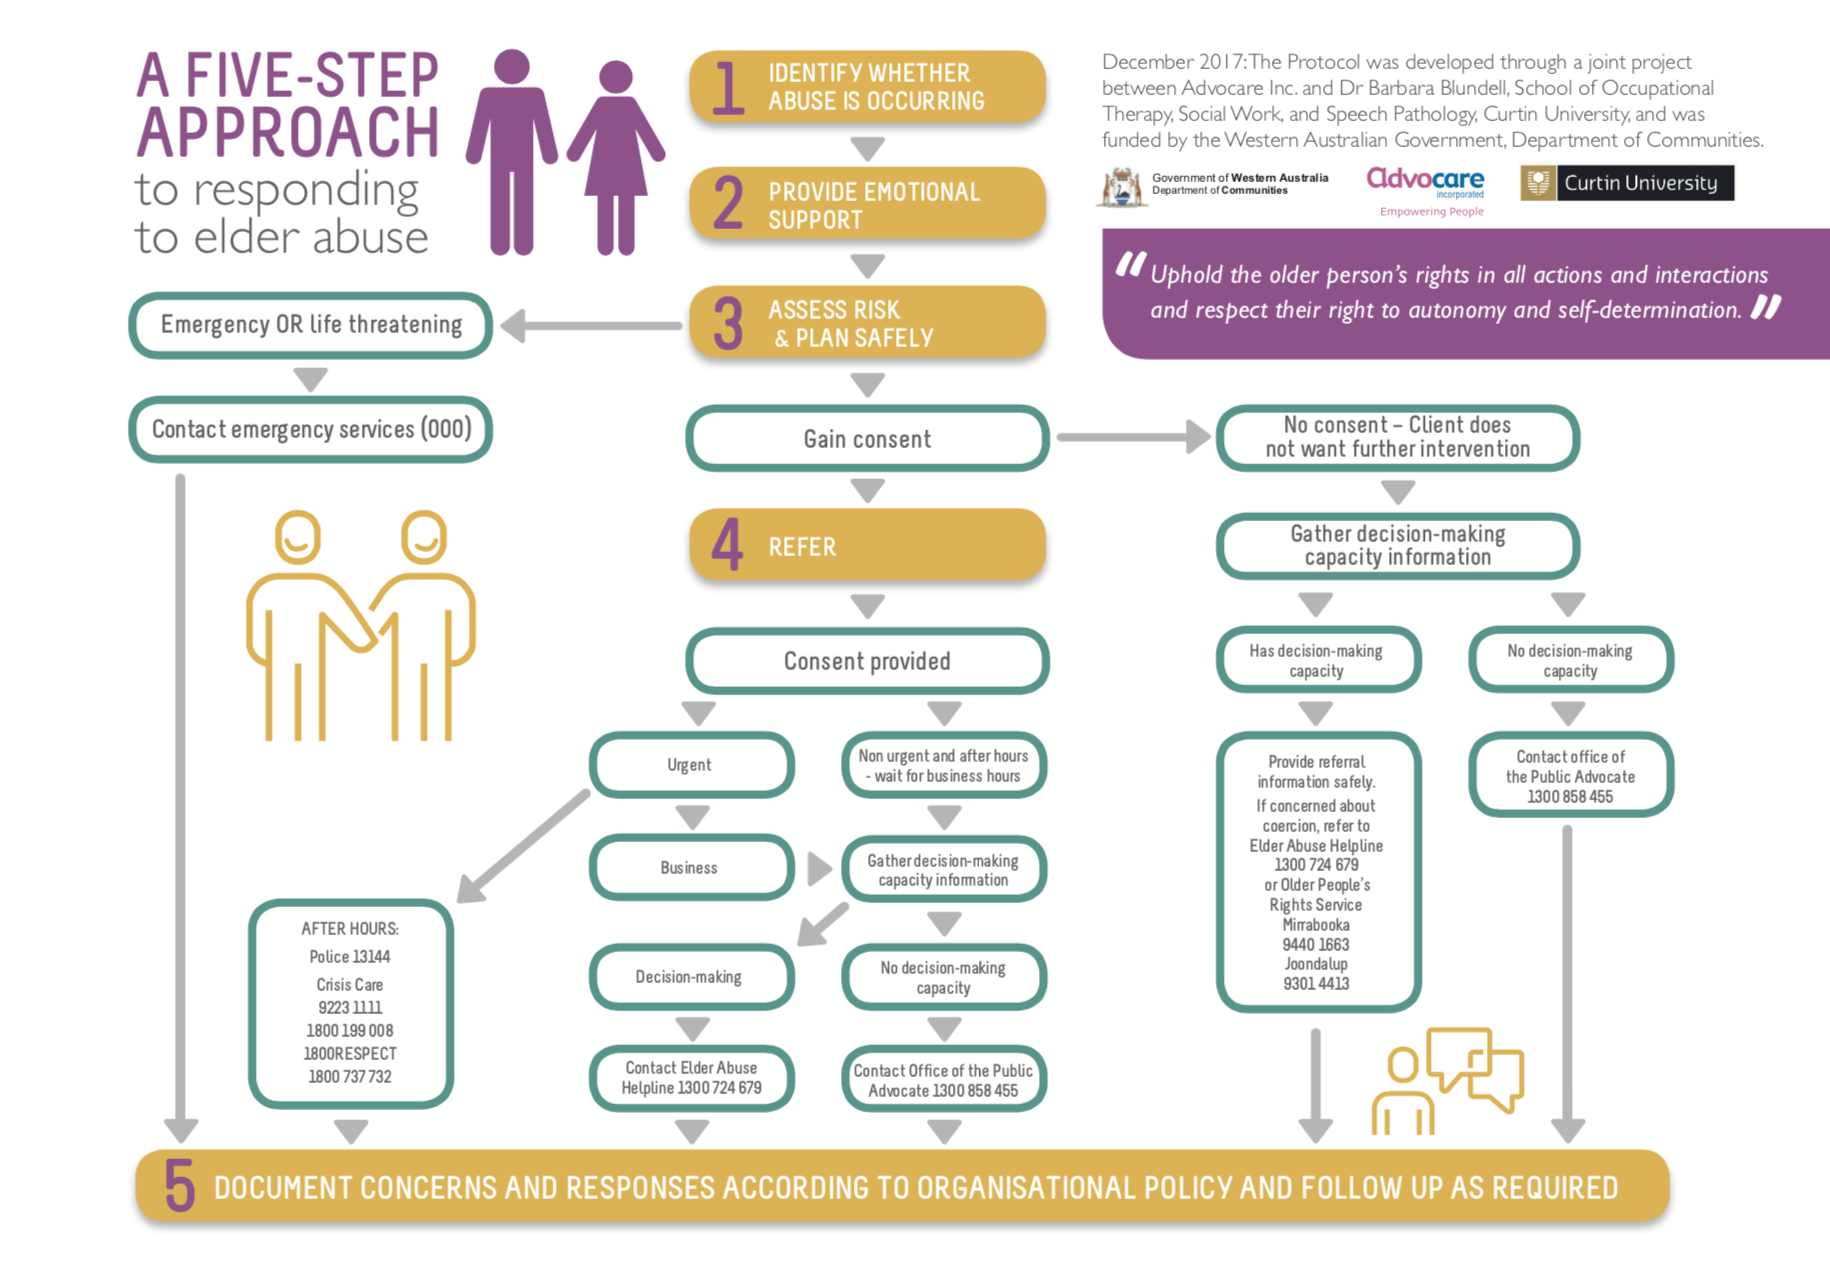 A 5-step approach to responding to elder abuse